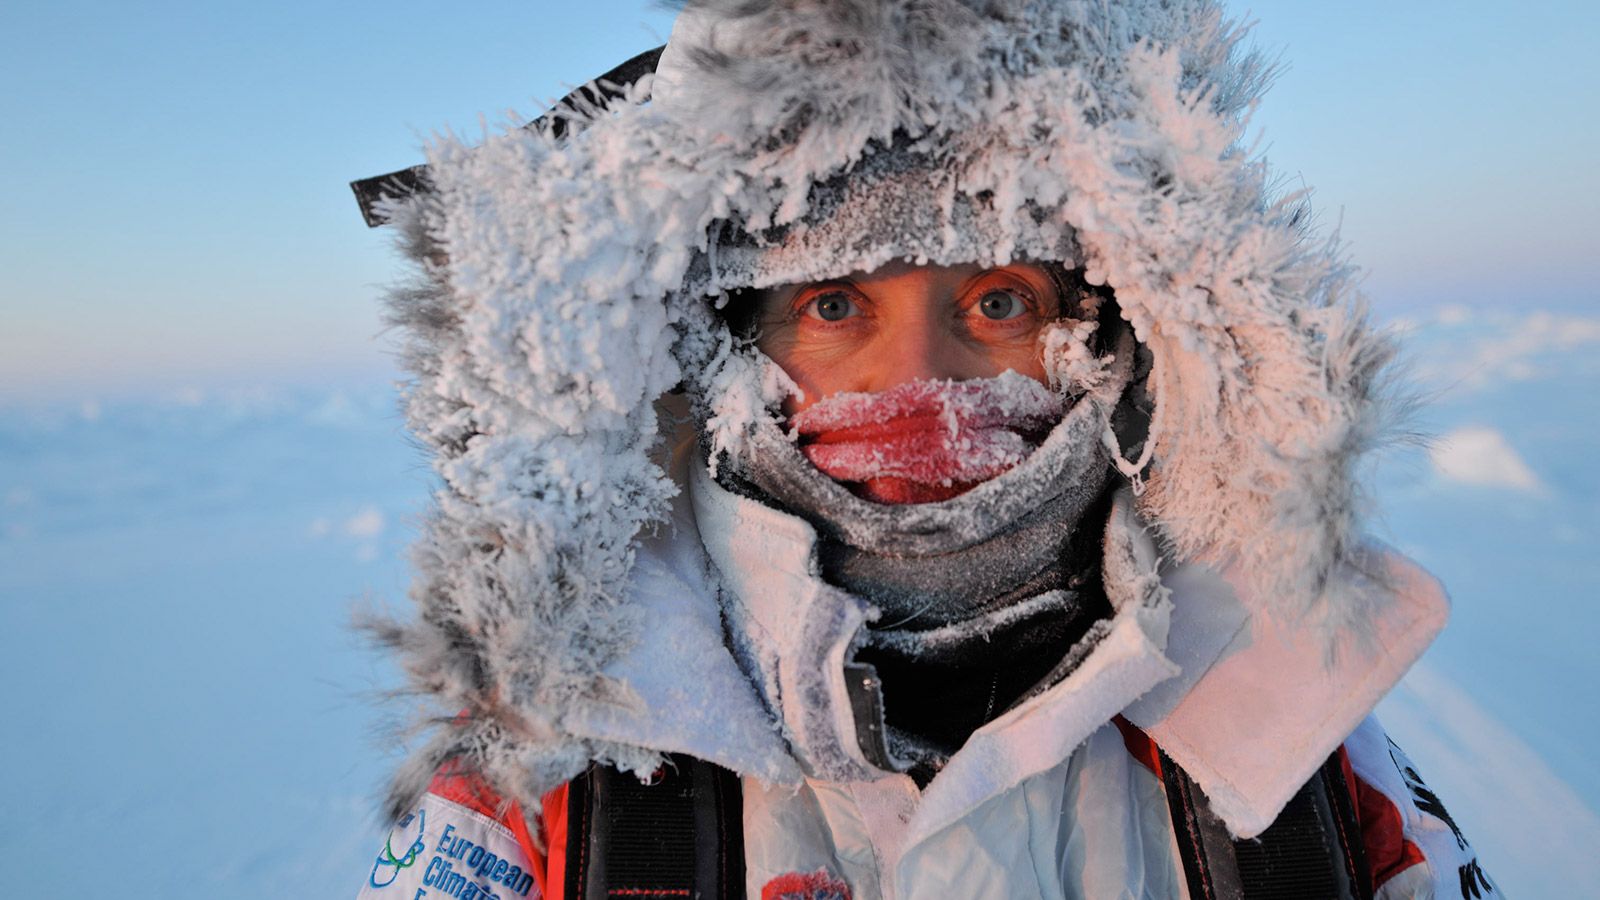 The Catlin Arctic Survey Polar Explorer Ann Daniels Recounts Her Experiences Of Expeditions